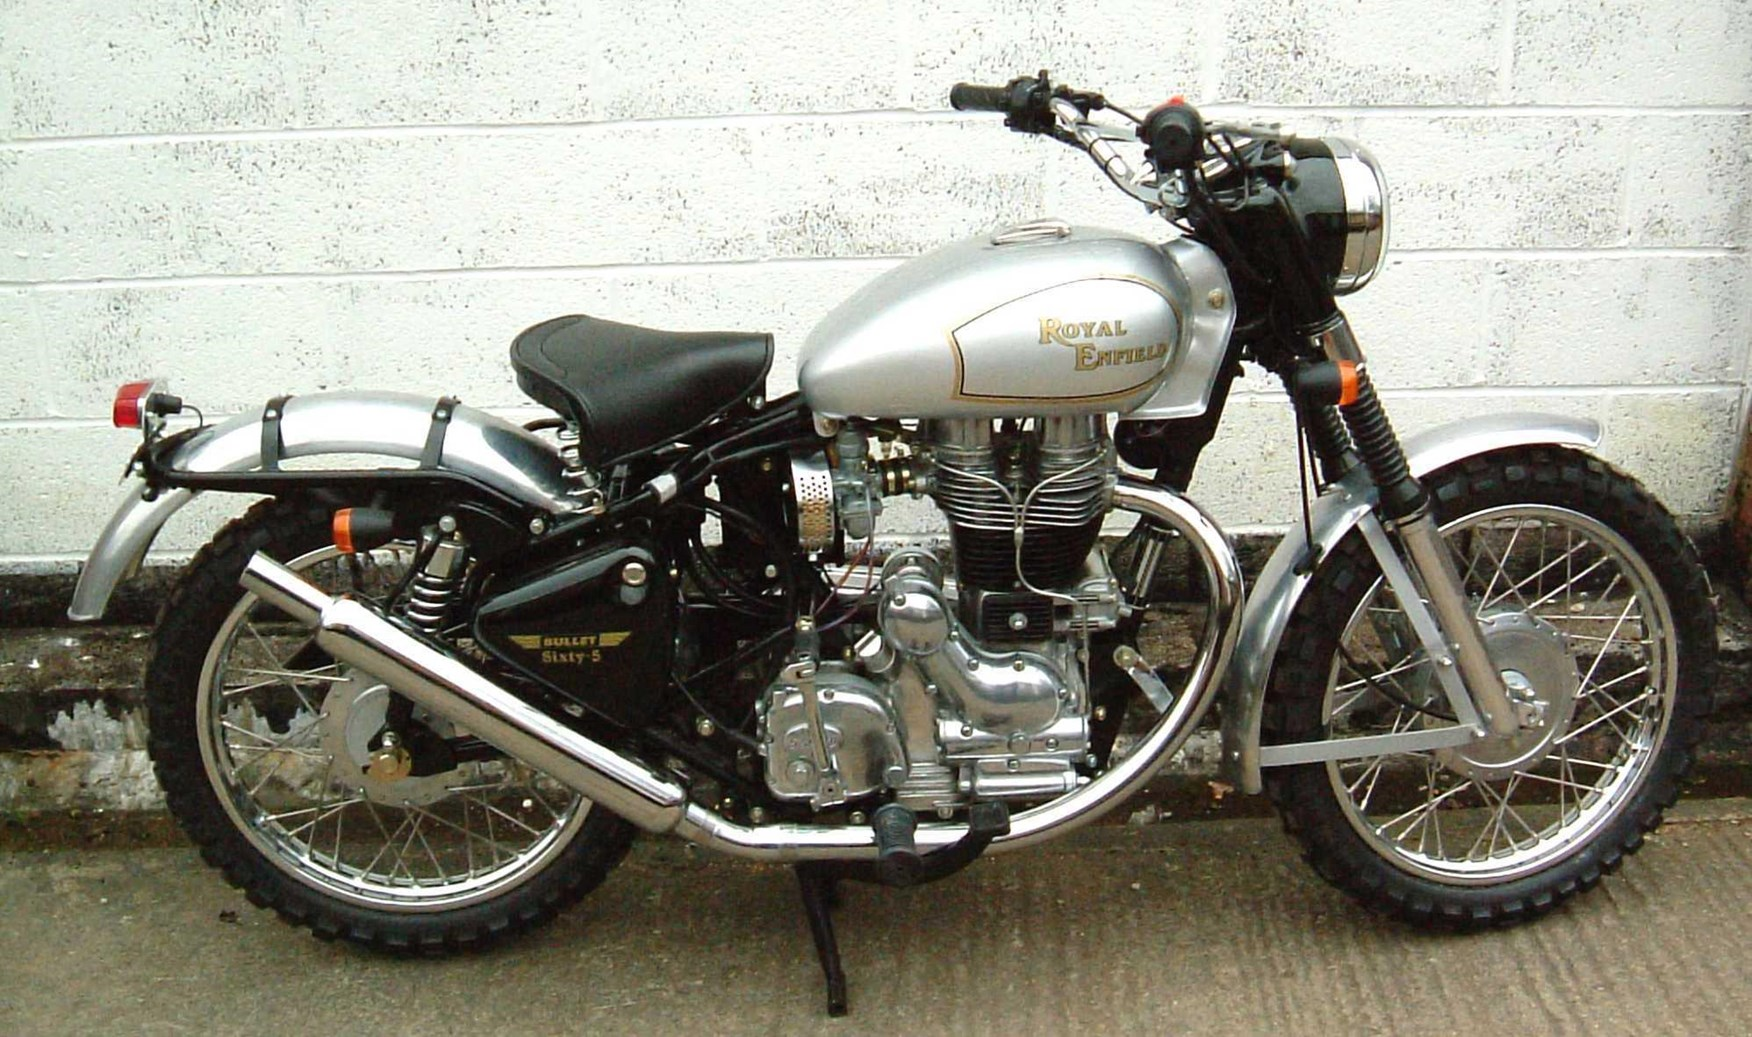 Royal Enfield Bullet 500 Trial Trail 2004 images #126592